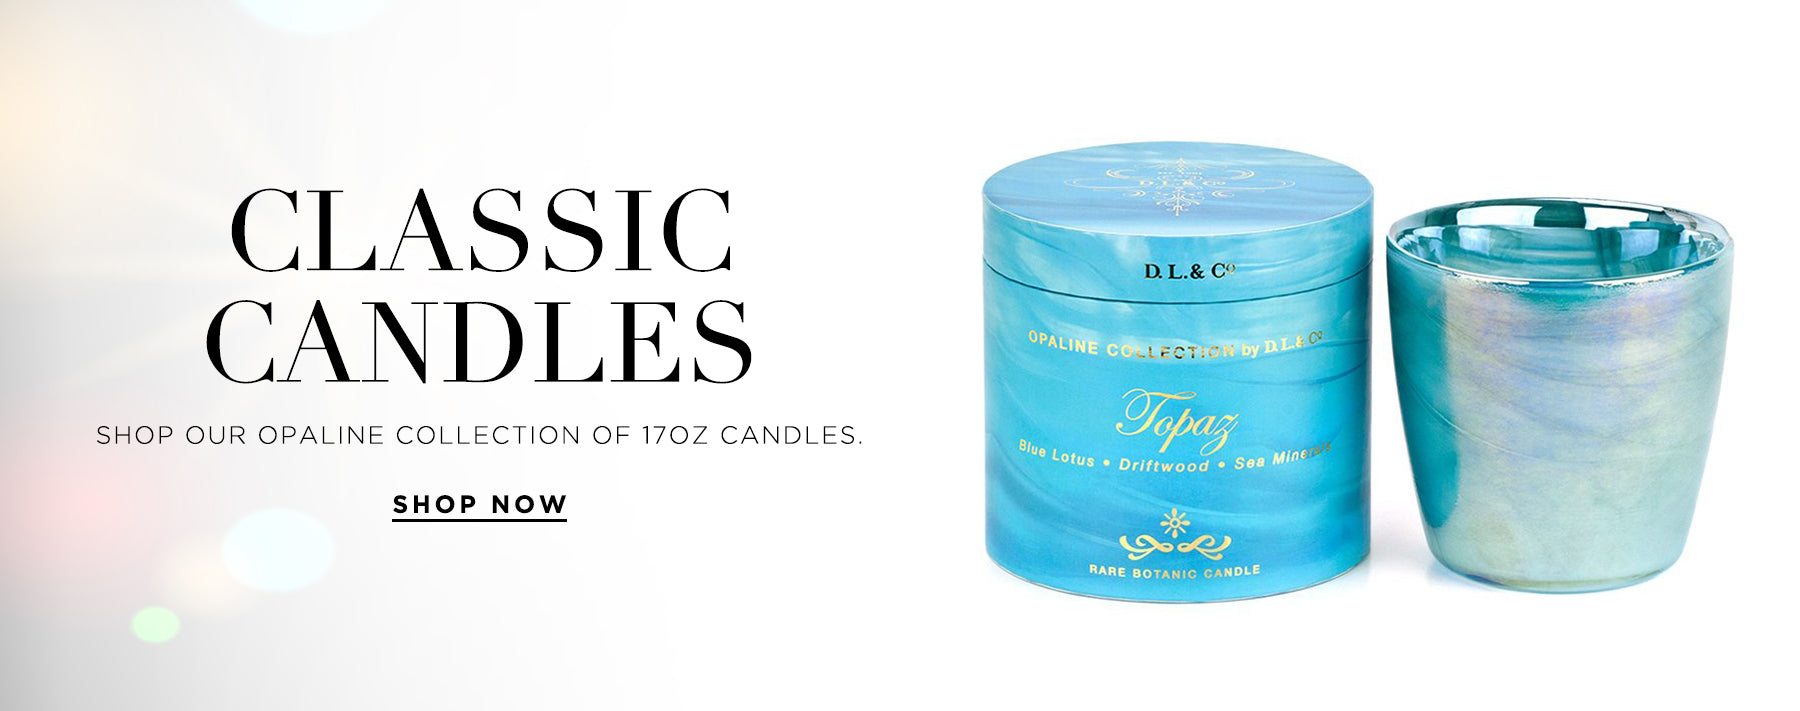 Classic candles. Shop our collection of 17oz opaline candles.